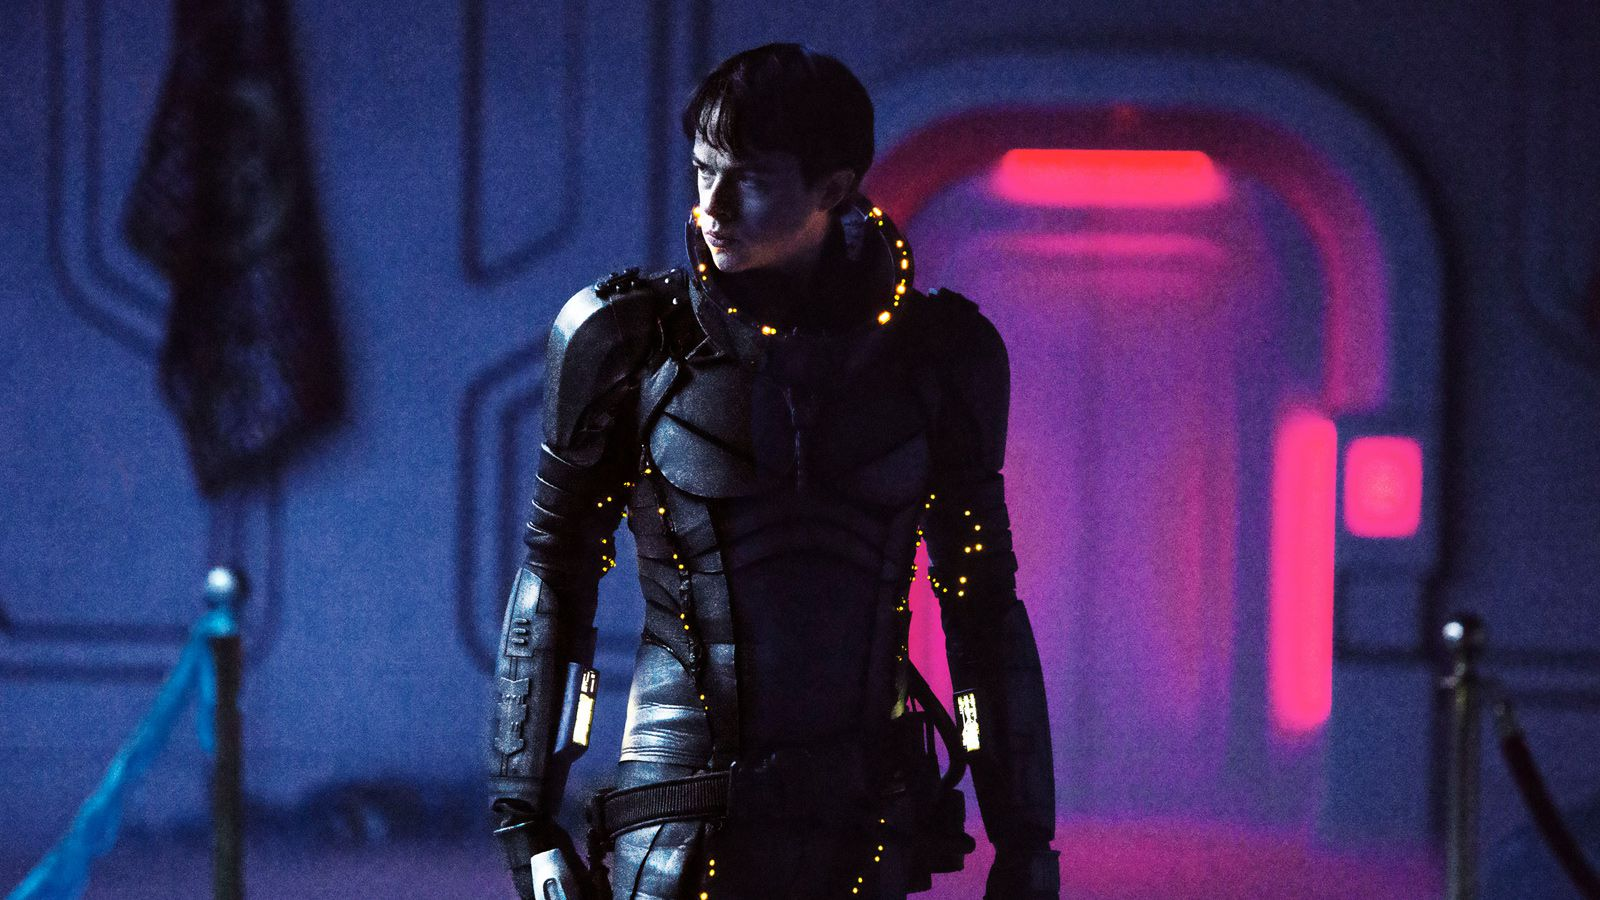 Valerian and the City of a Thousand Planets is not your typical comic book movie